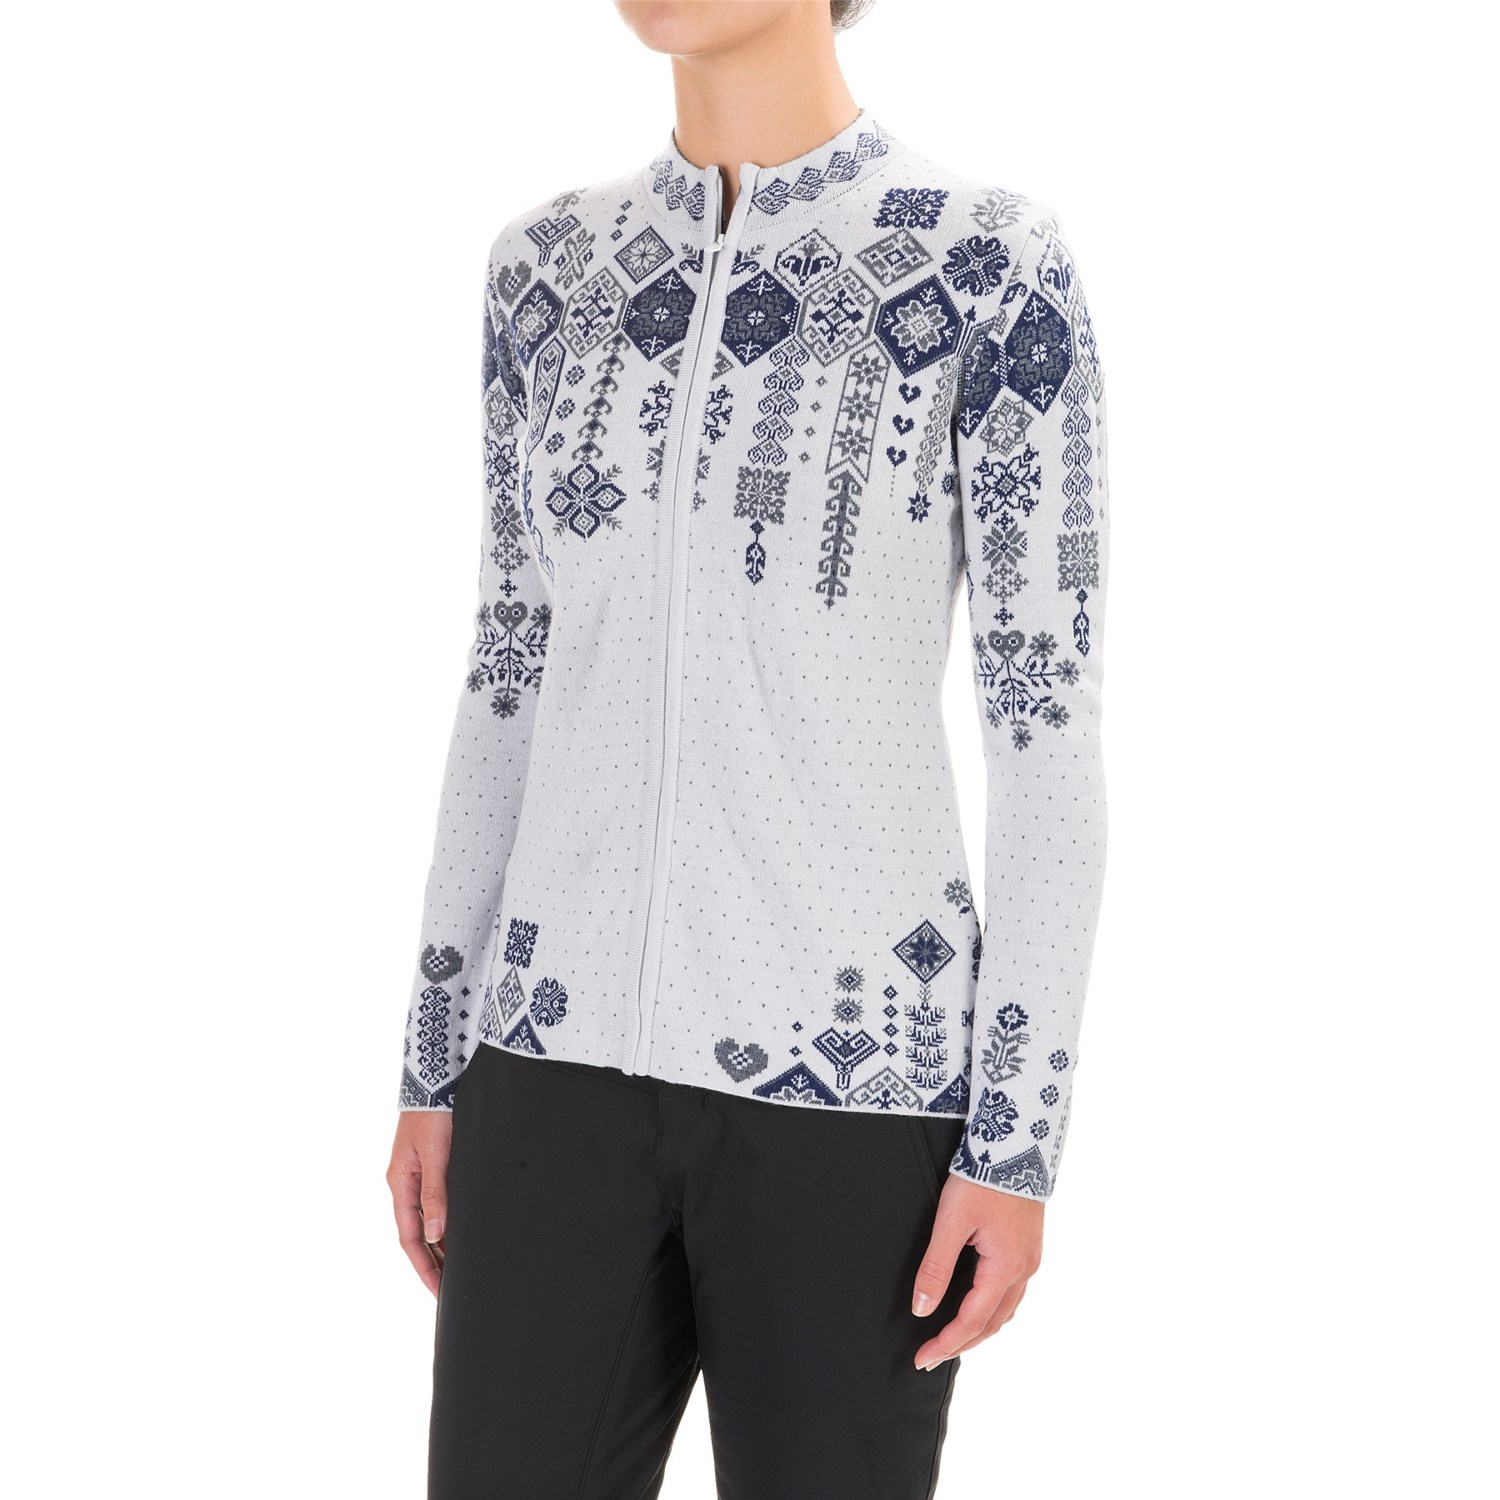 Obermeyer Chalet Cardigan Sweater (For Women) - Save 67%